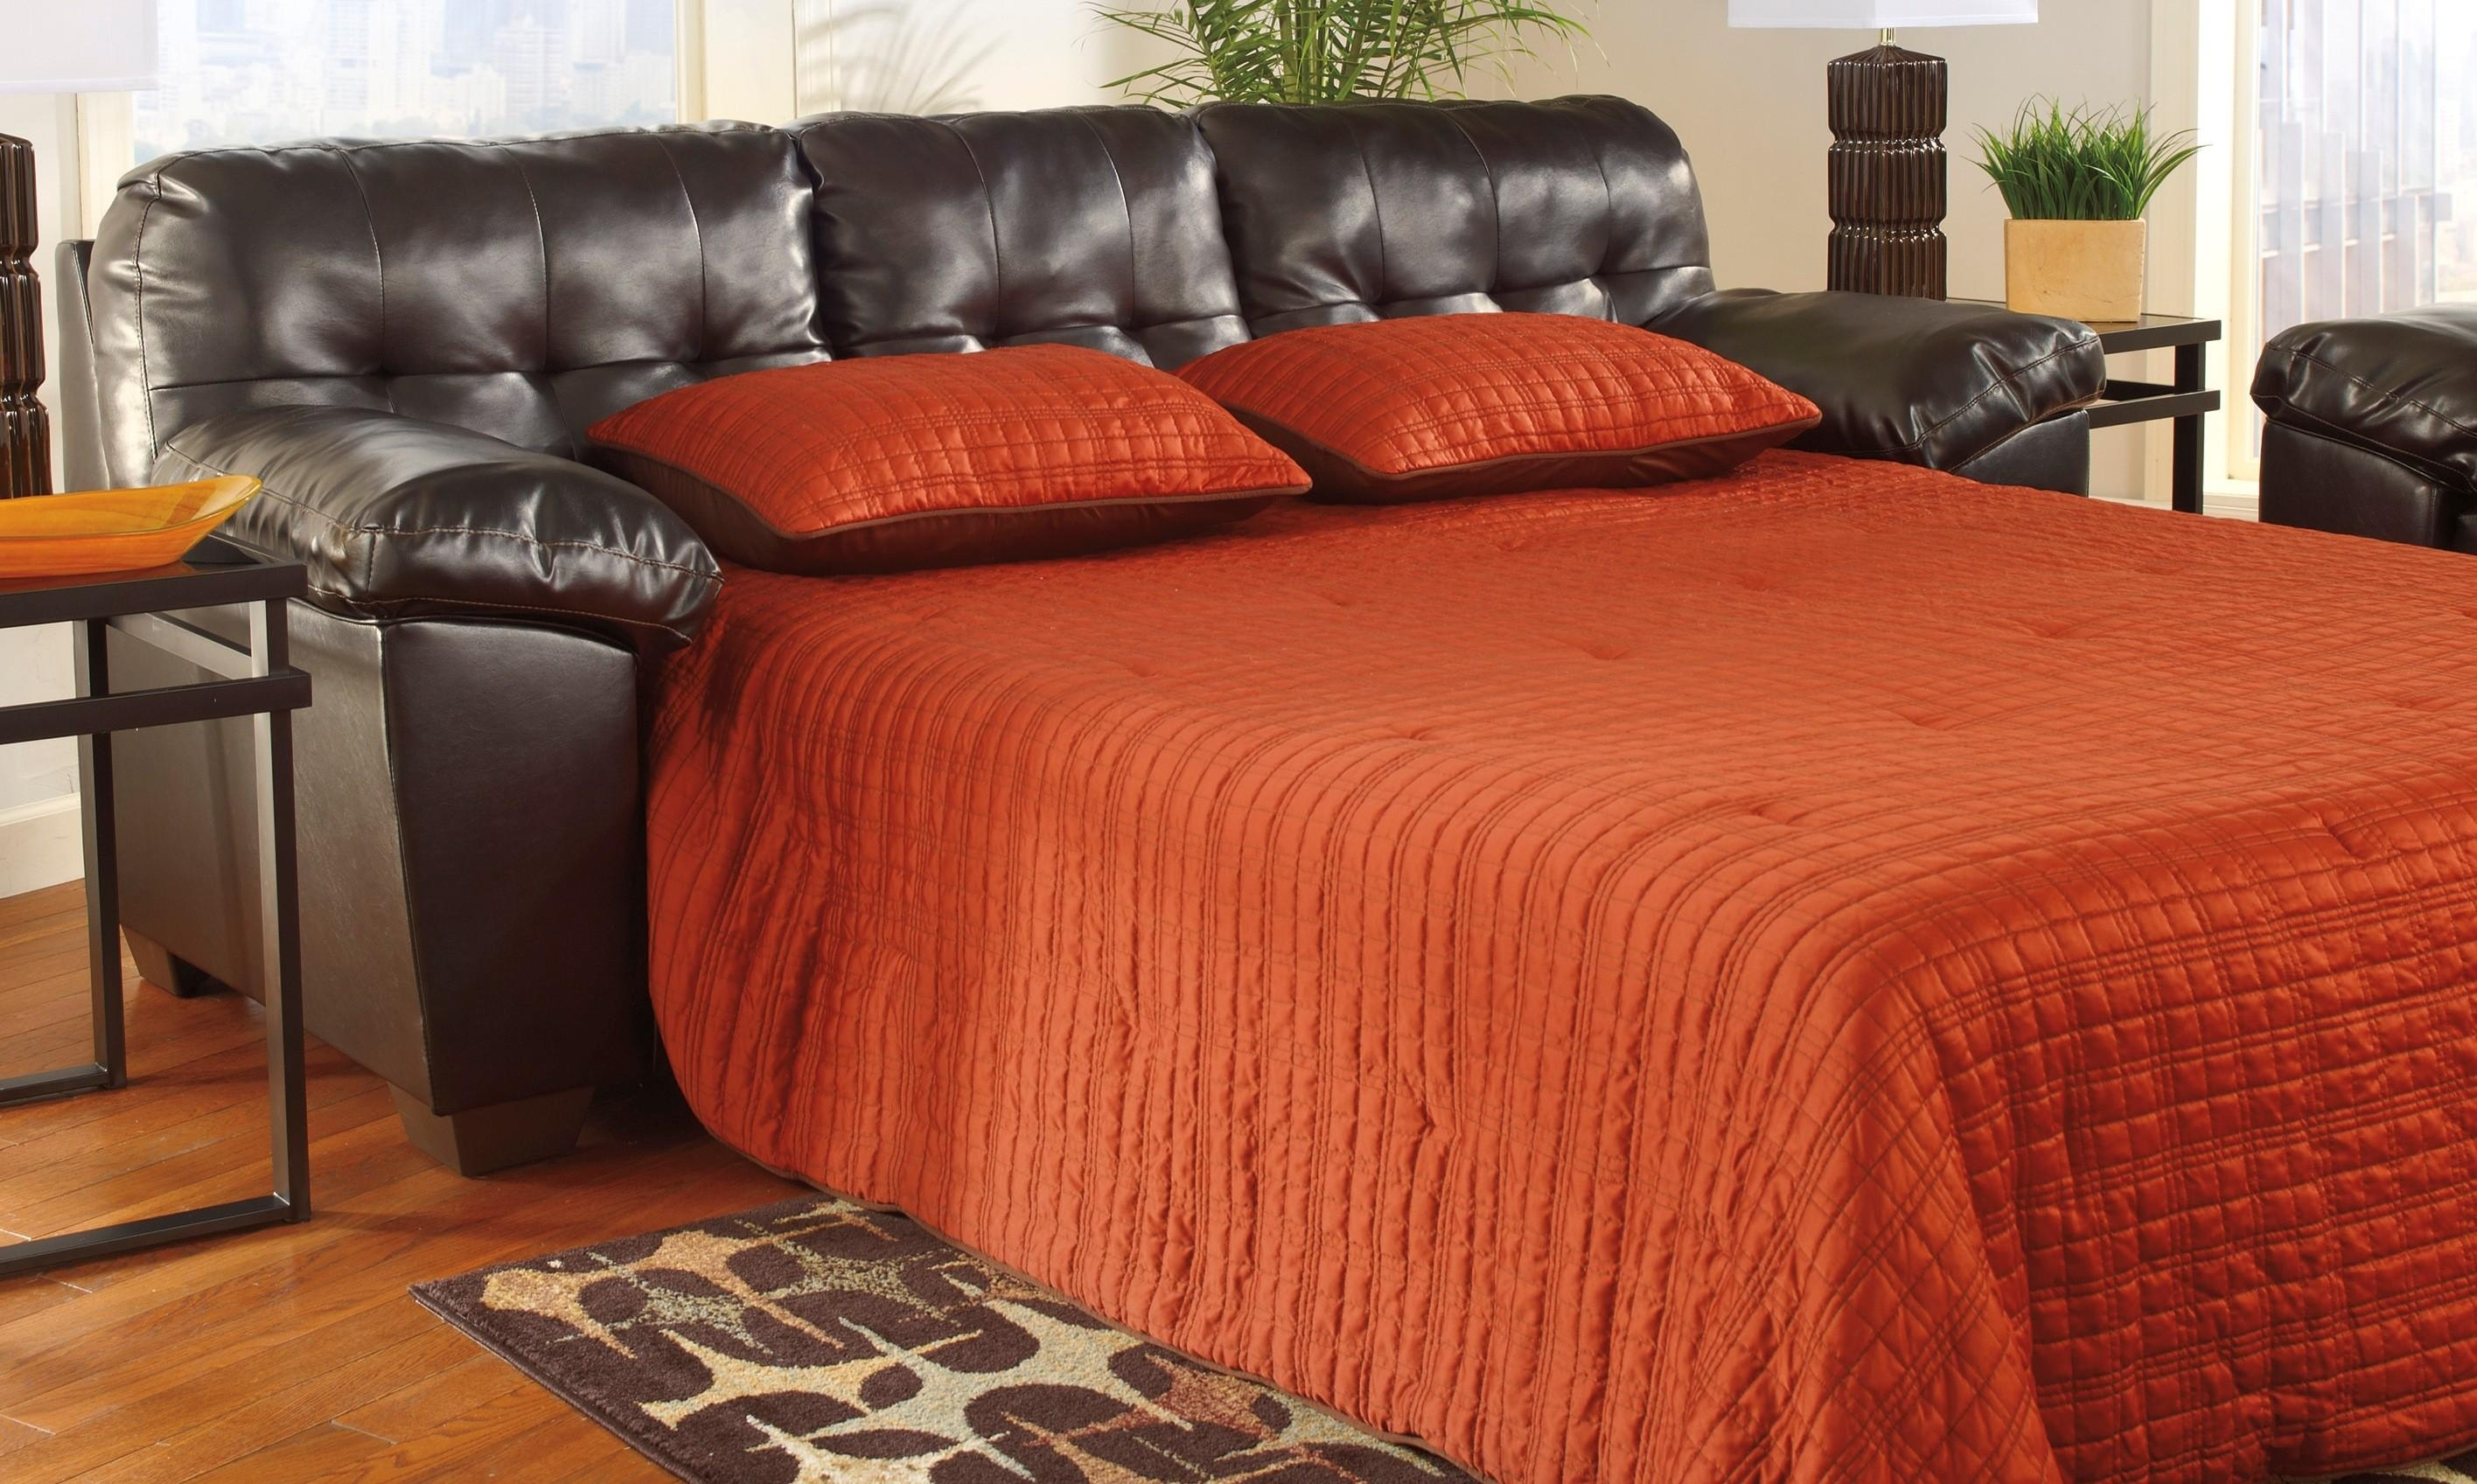 Sofa Bed Sheets With Sofa Beds Sheets (Image 7 of 20)